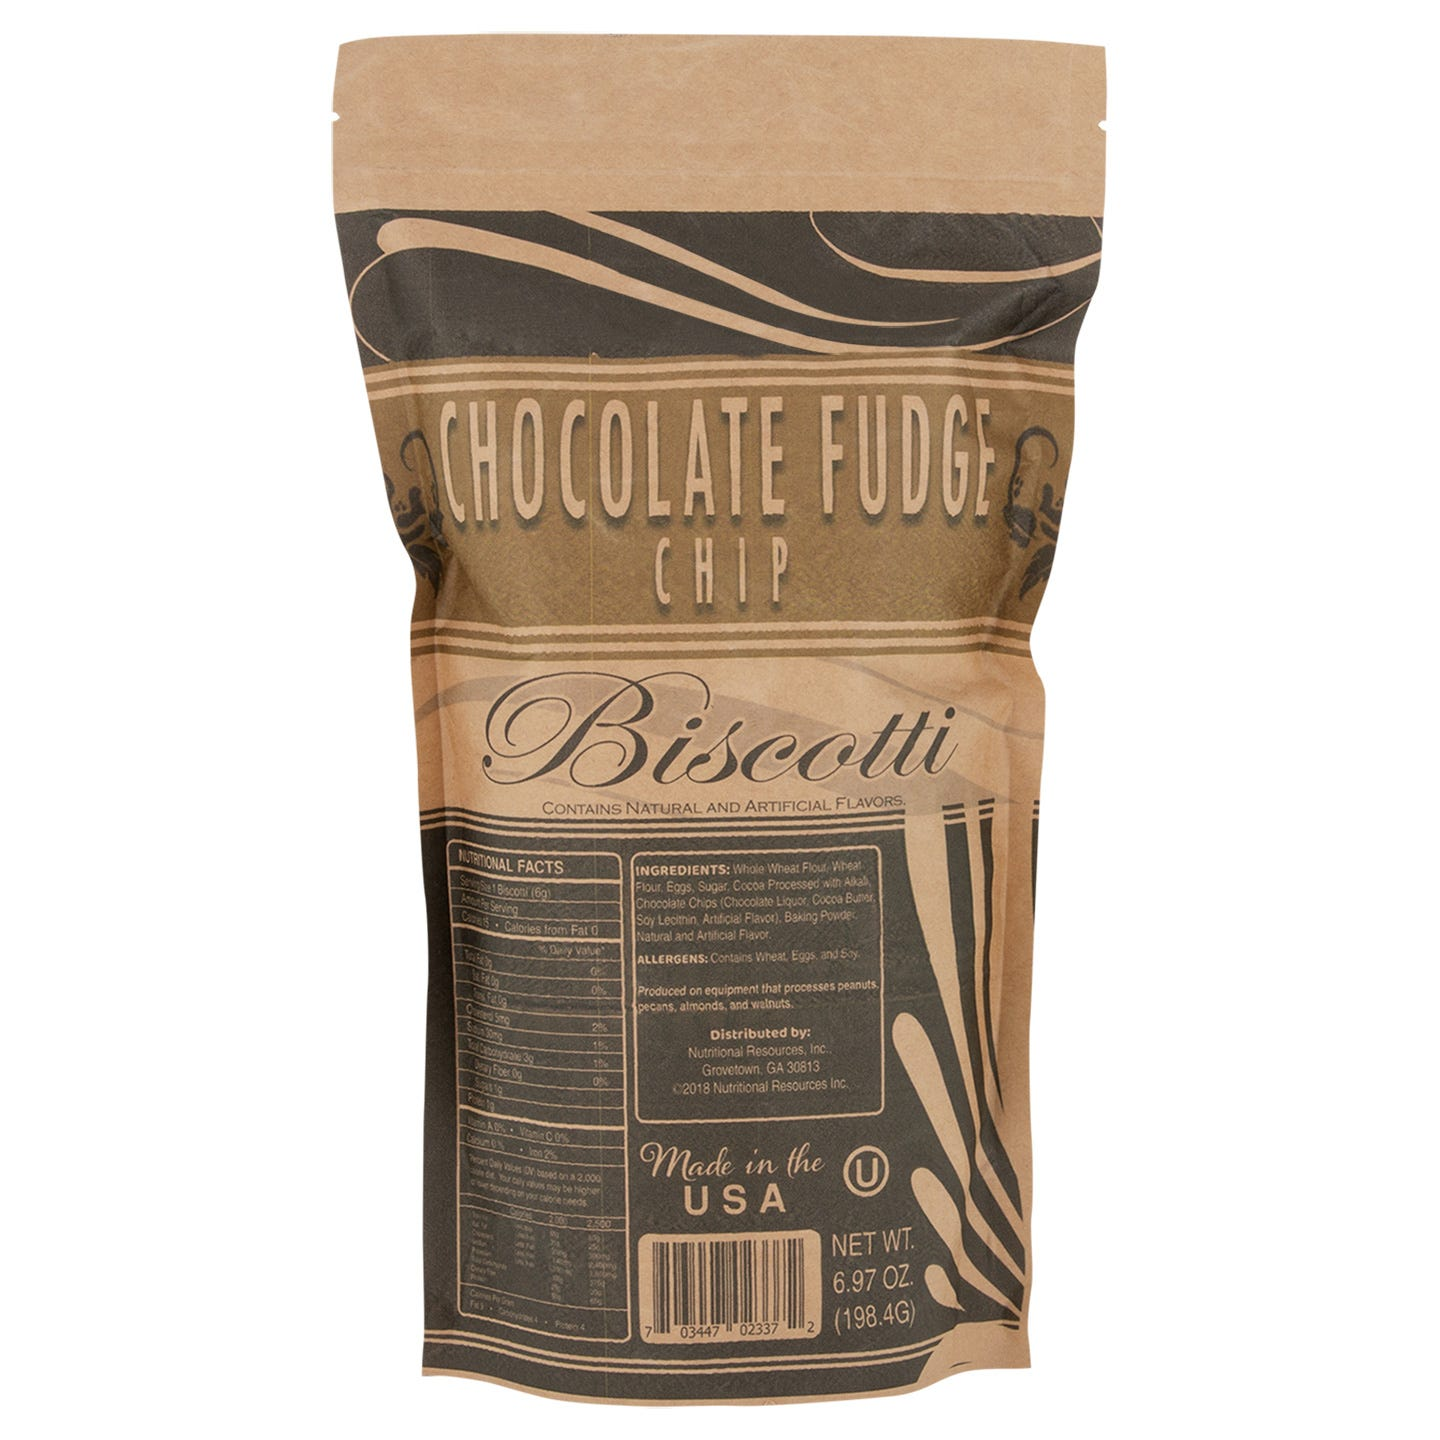 Fat-Free Biscotti Chocolate Fudge Chip 7 Oz Bag - BariWise